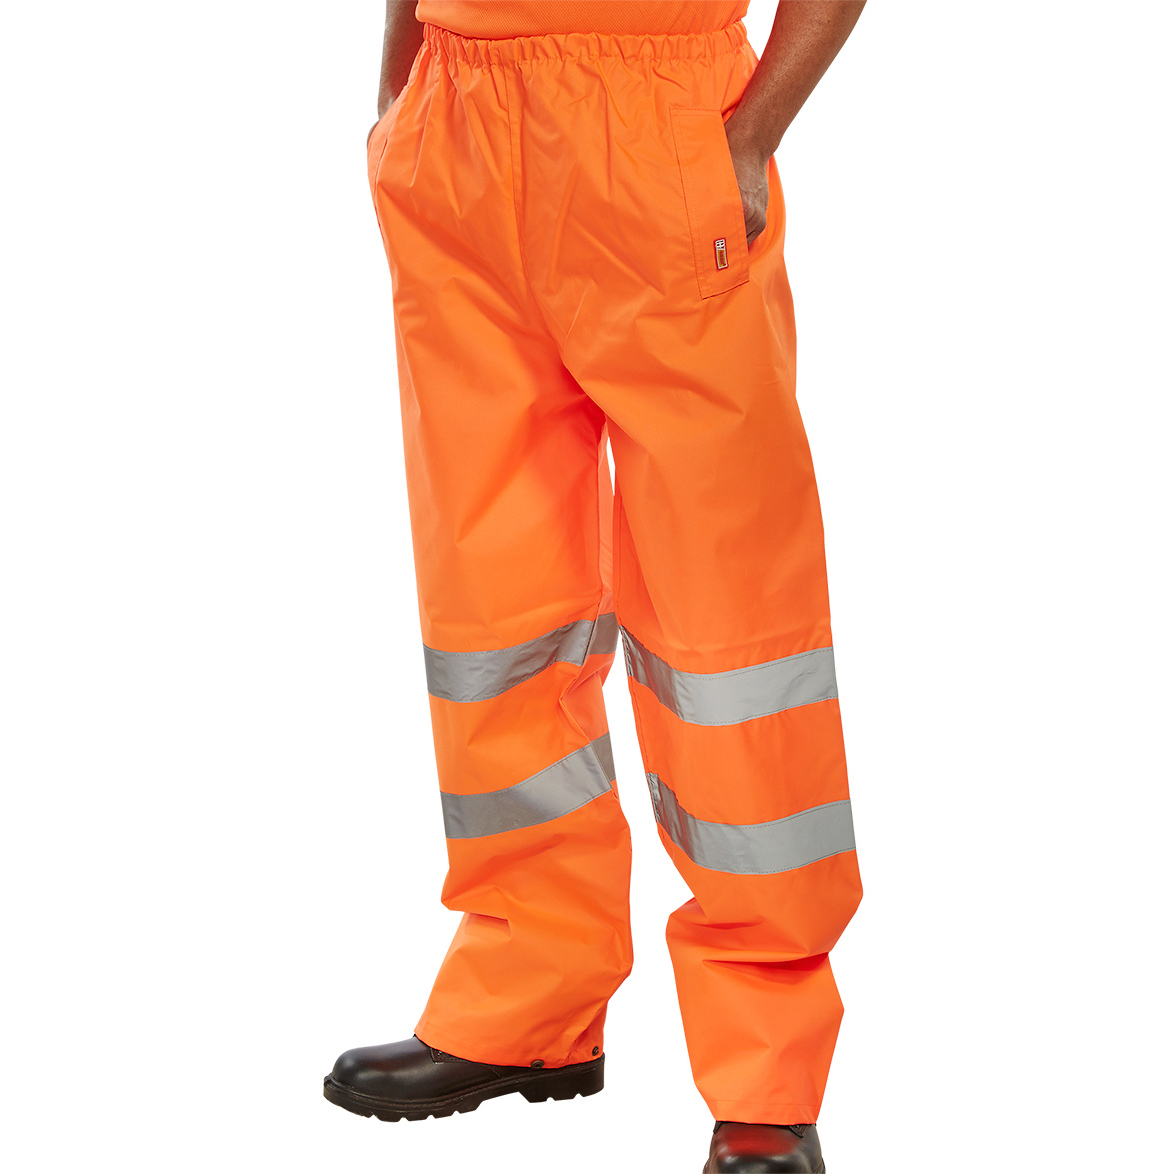 BSeen Traffic Trousers Hi-Vis Reflective Tape 3XL Orange Ref TENORXXXL *Up to 3 Day Leadtime*